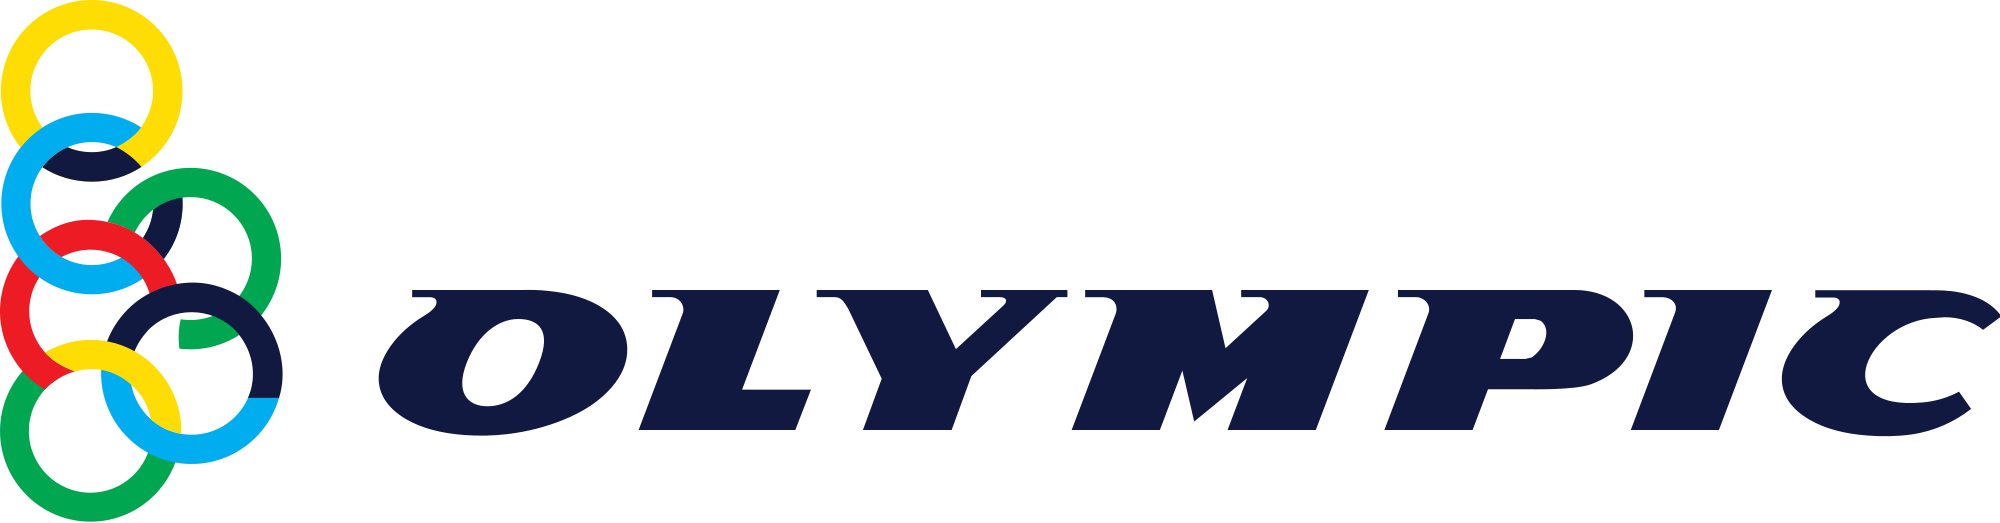 File:Olympic Air logo.png - Wikimedia Commons